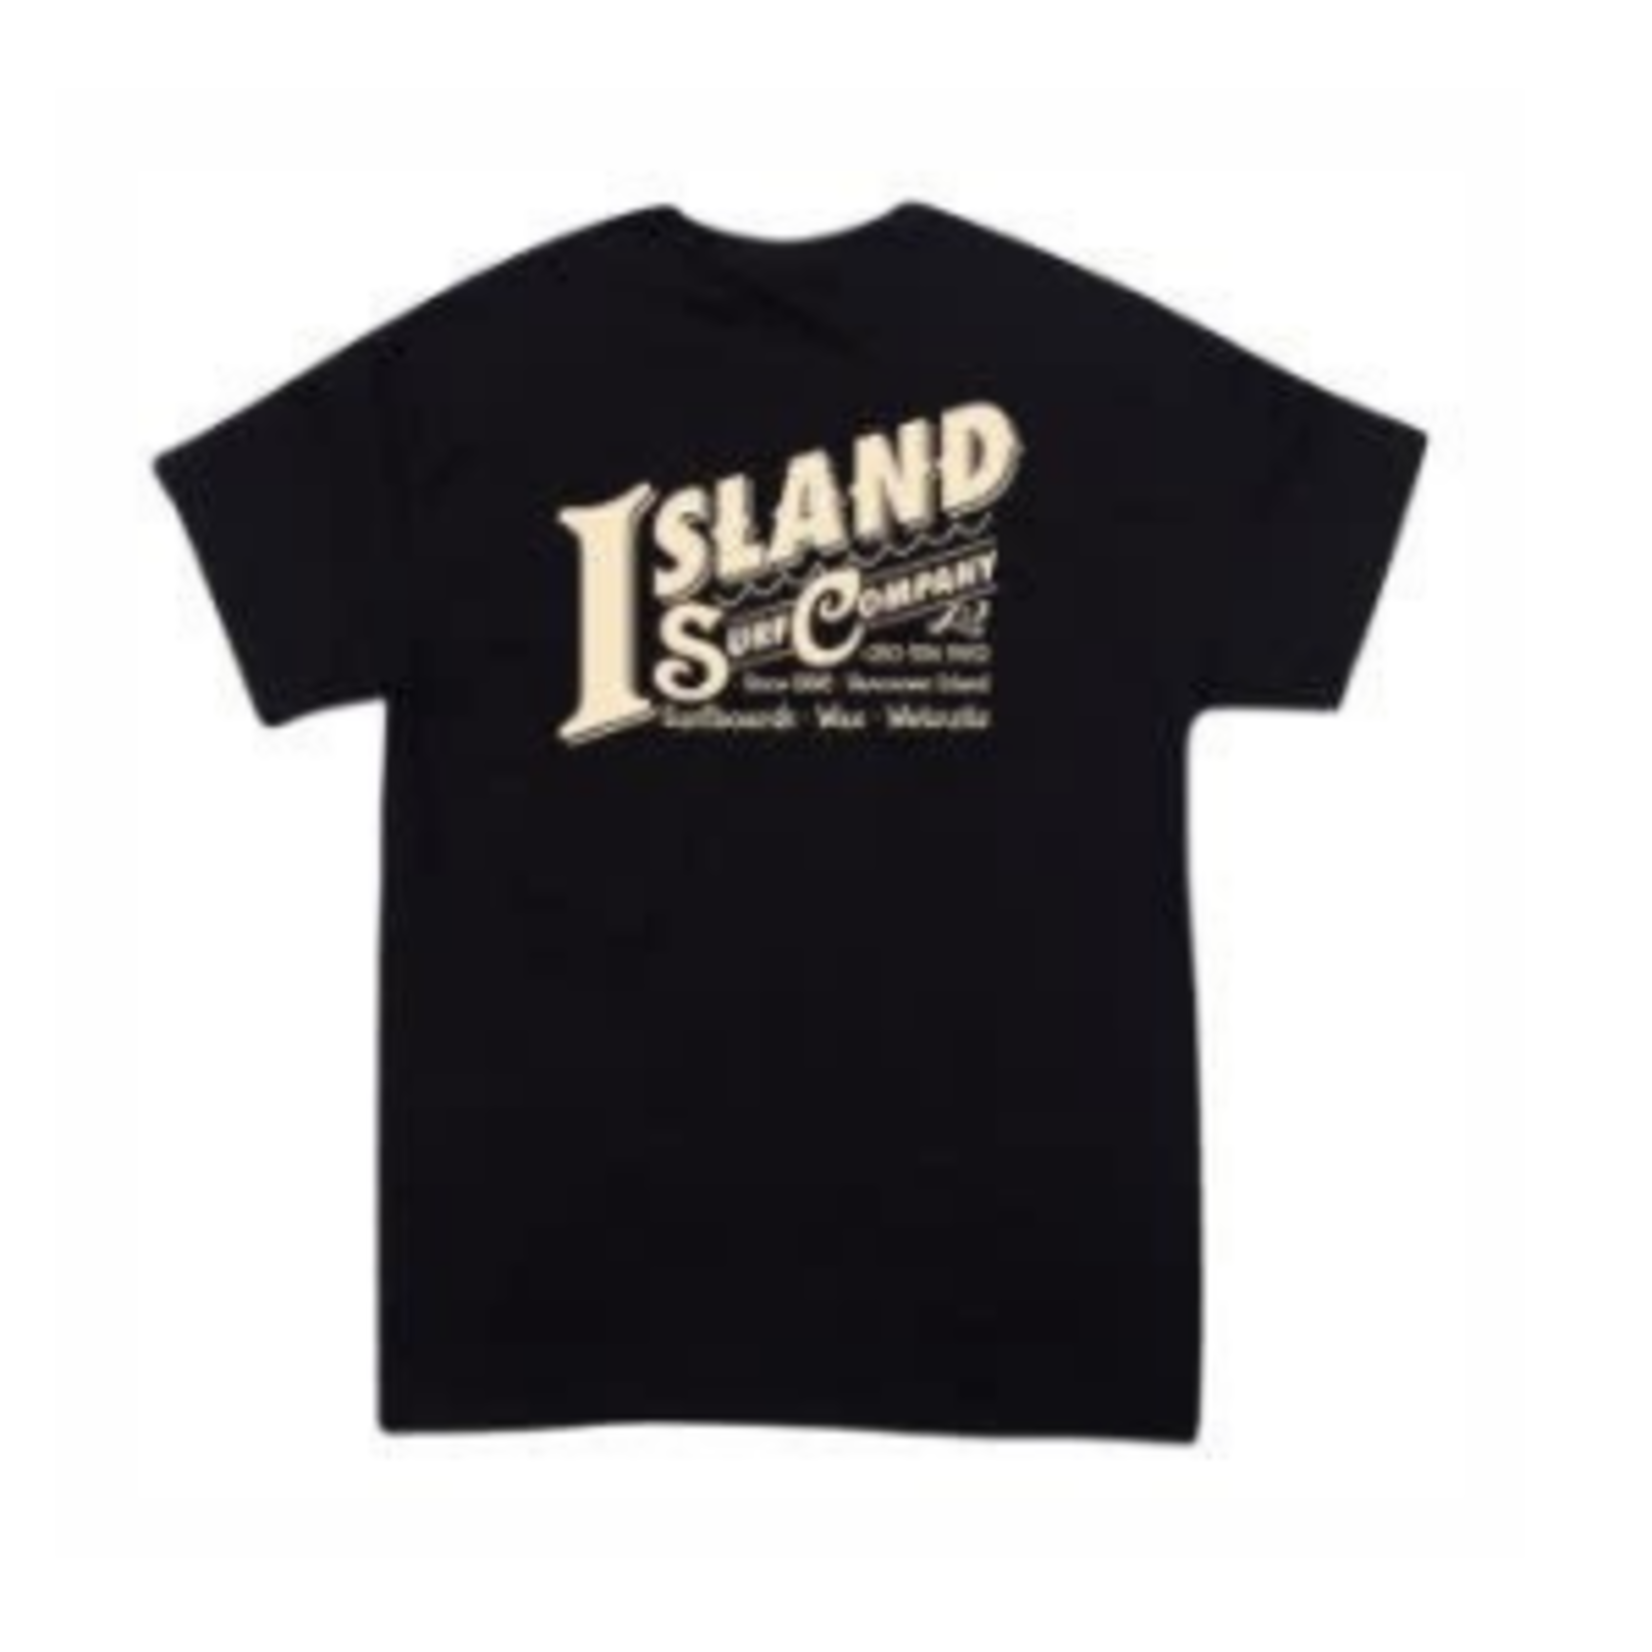 ISC Painter Shirts.